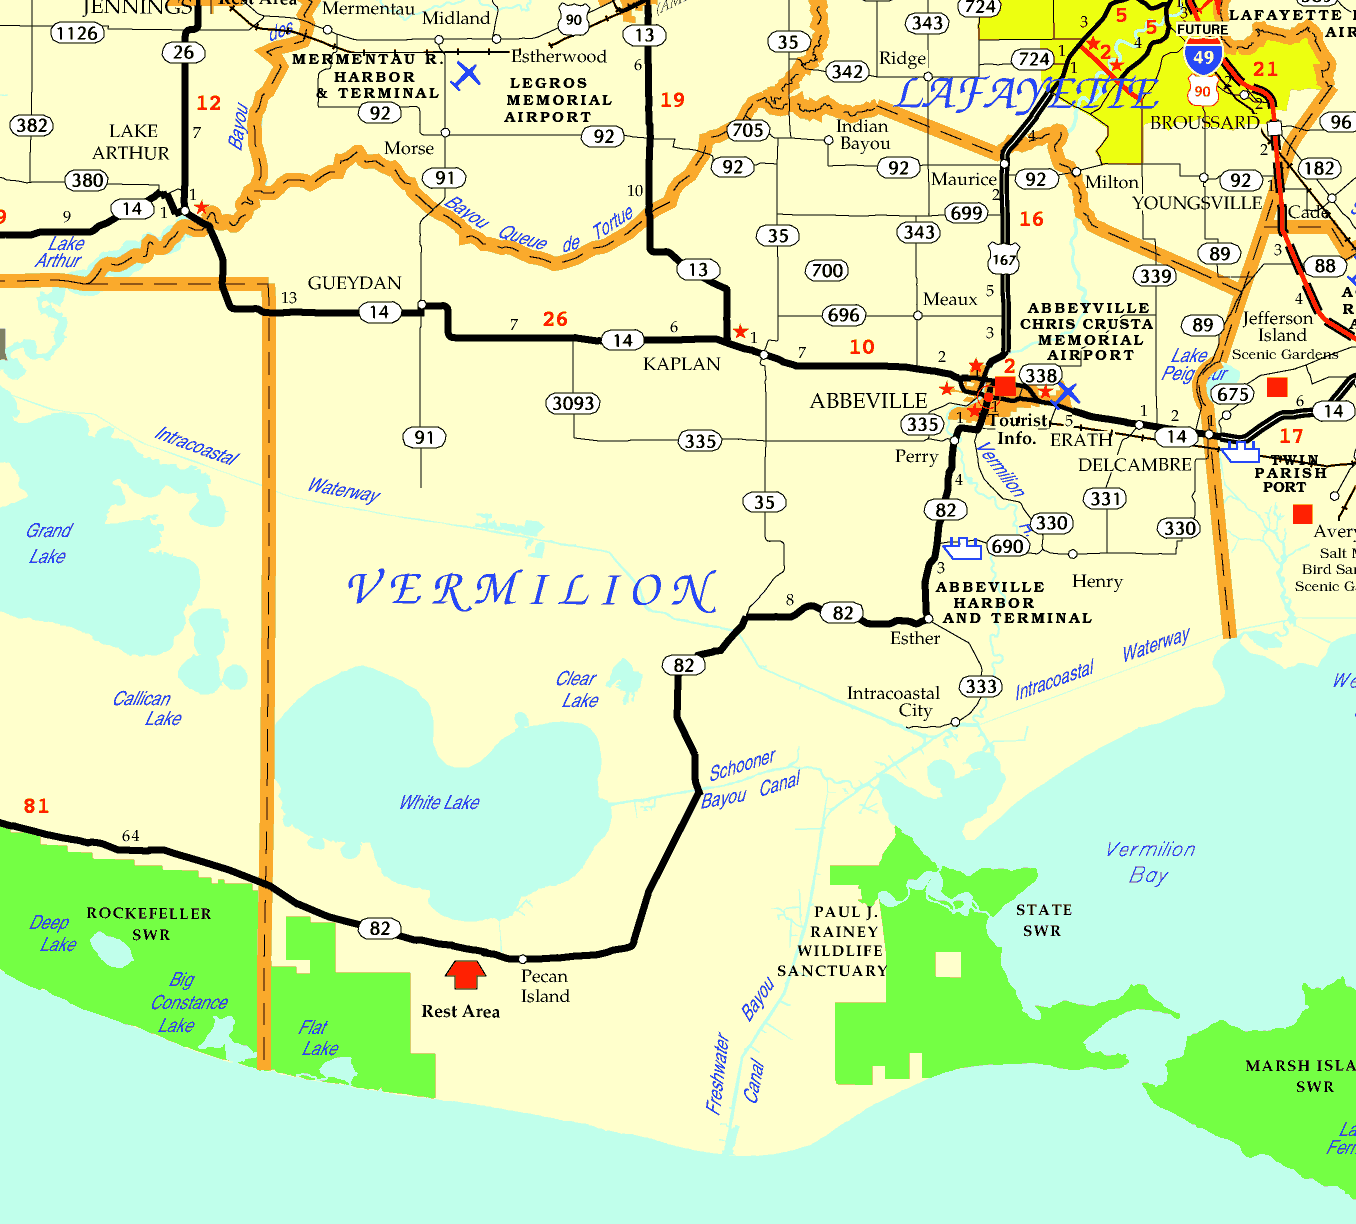 DOTD Tourism Map of Vermilion Parish